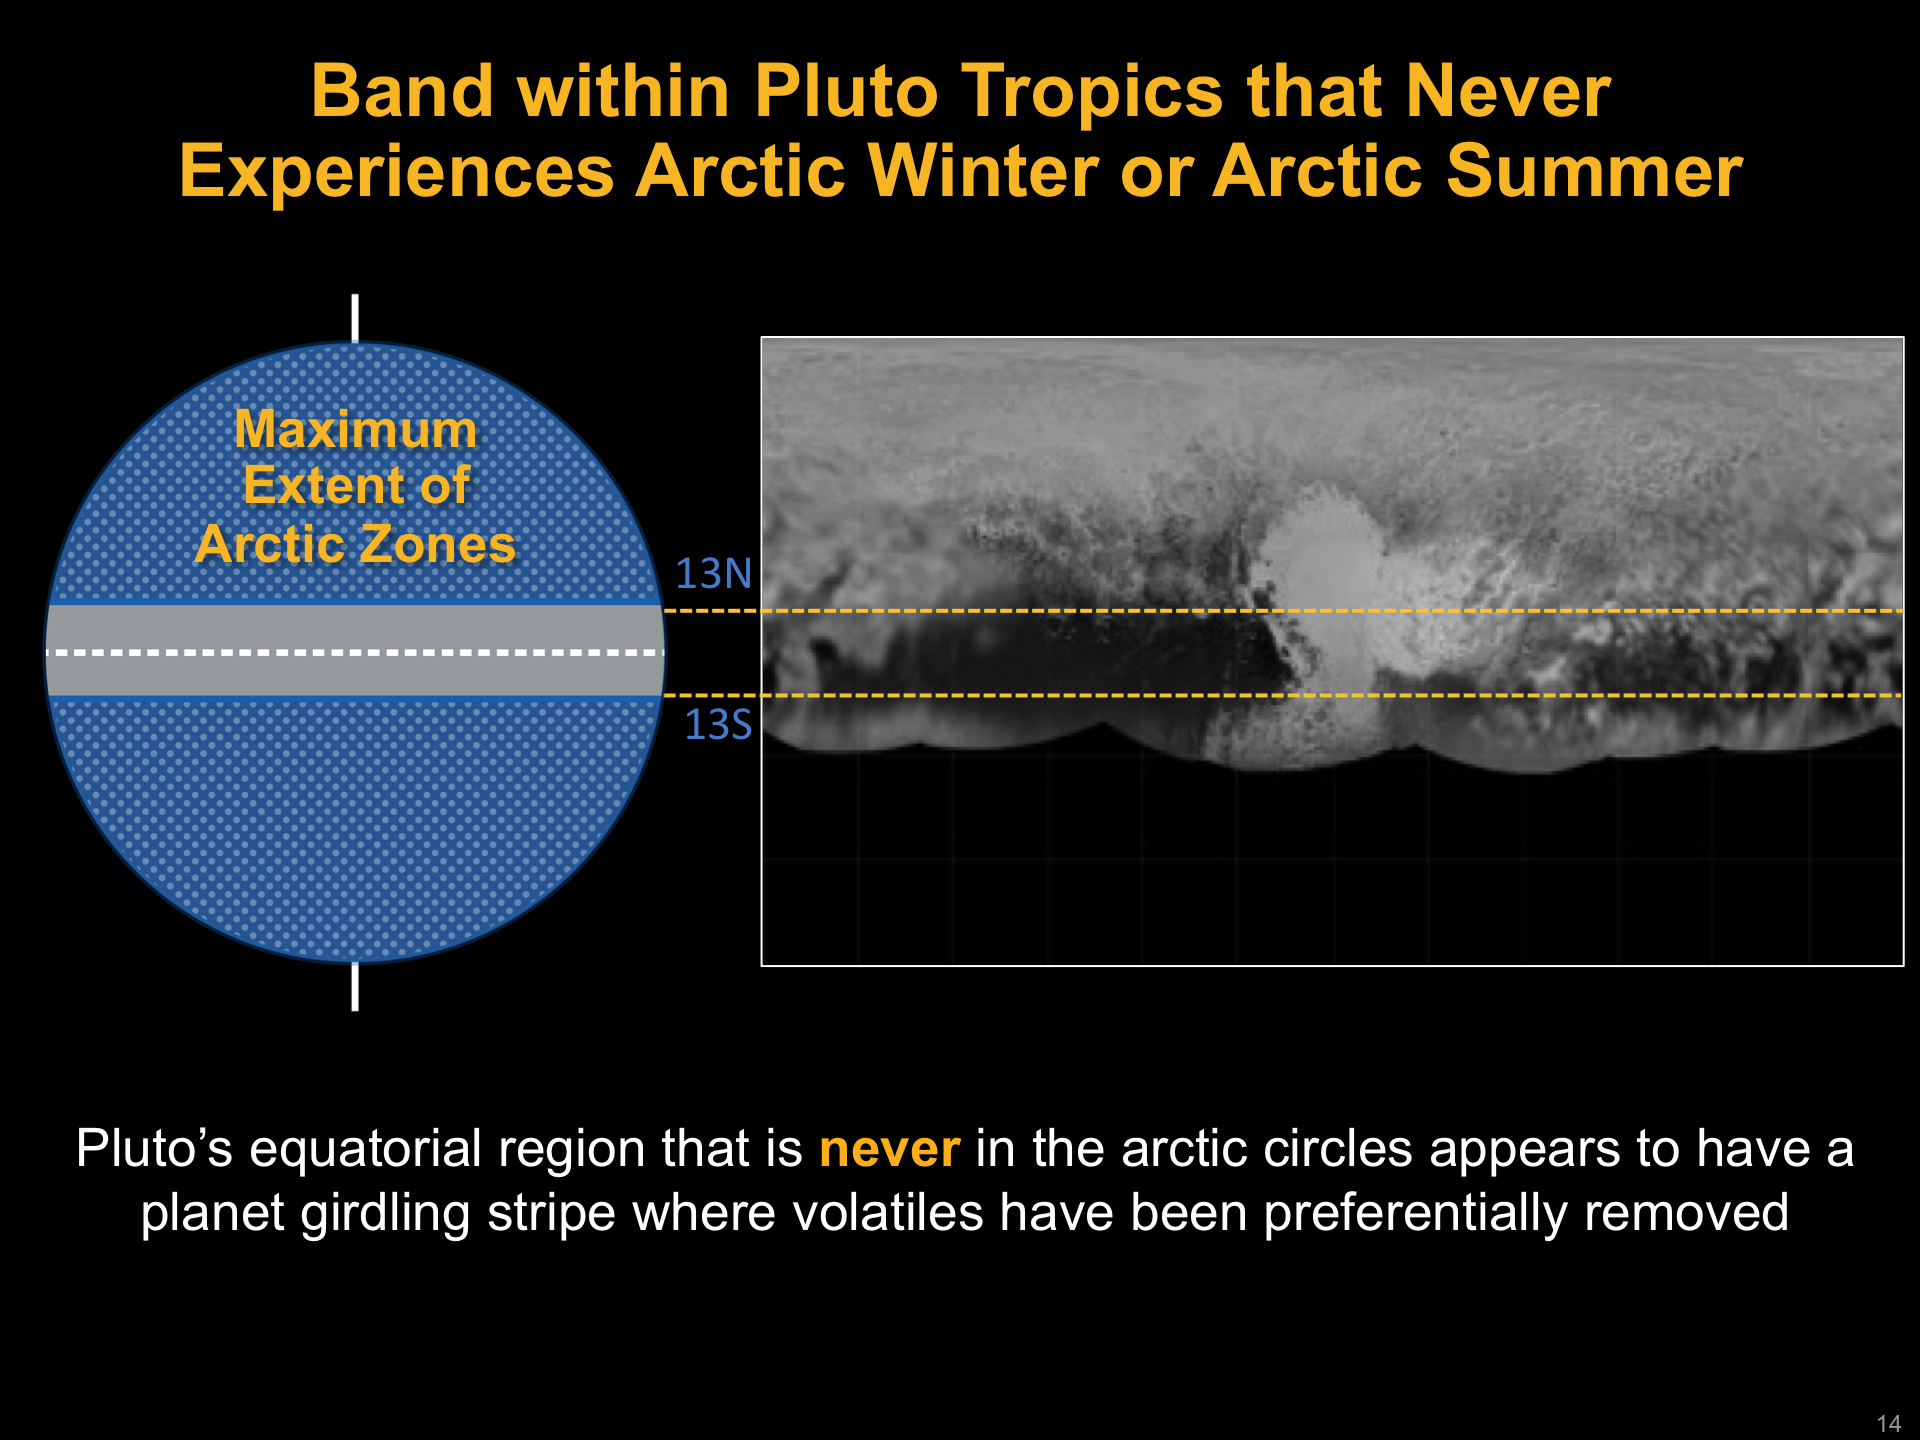 Rivers of Liquid Nitrogen May Have Once Flowed on Pluto